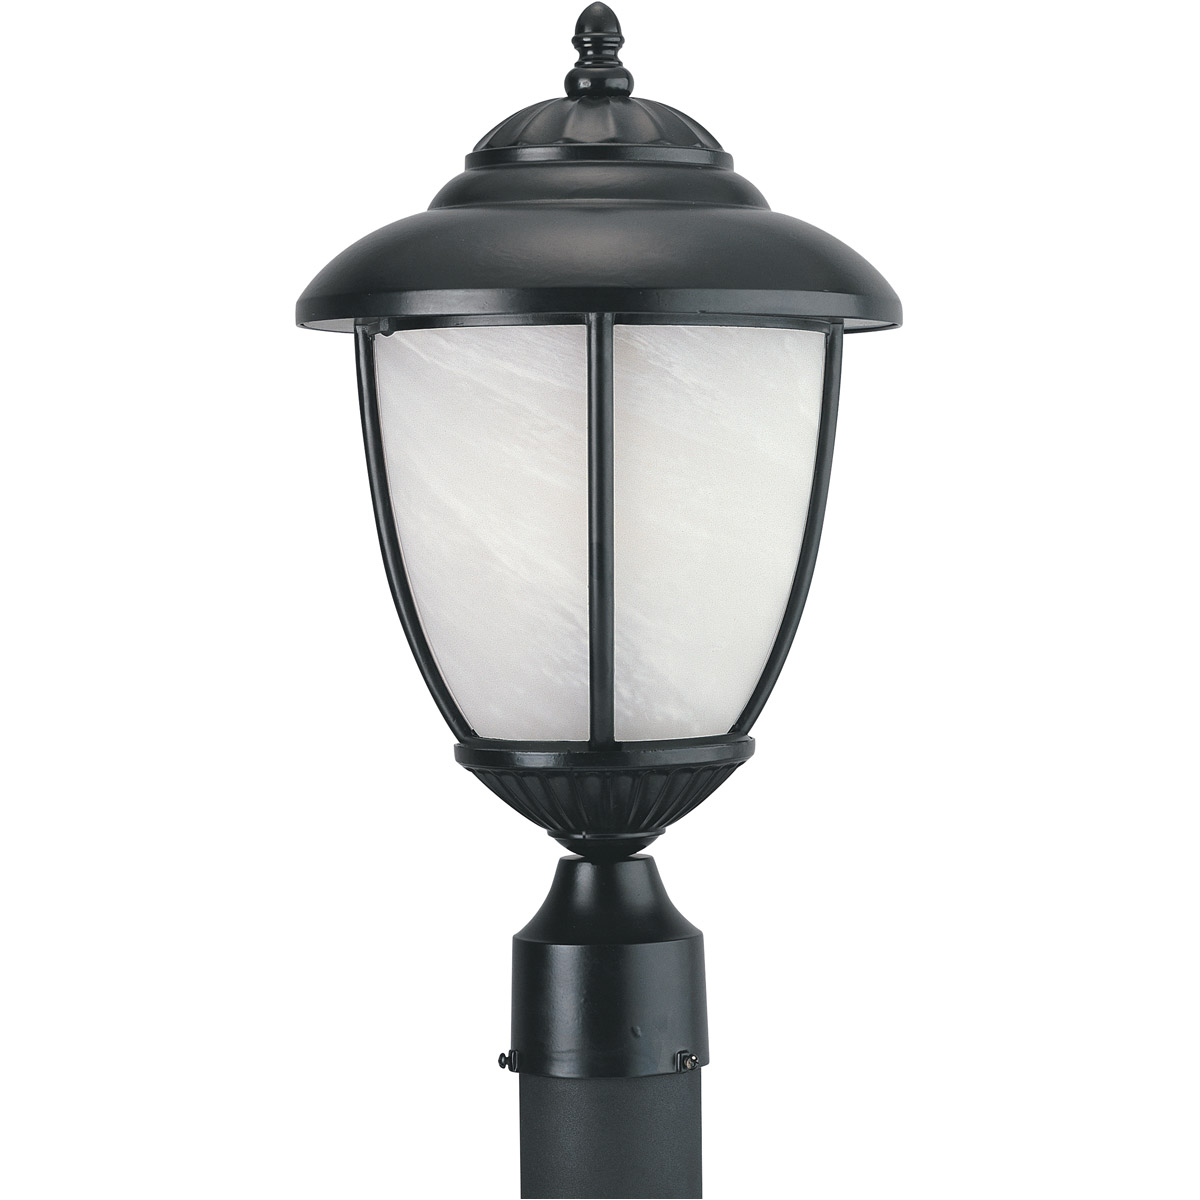 Sea Gull 82950PBL-12 Yorktowne 1 Light 17 inch Black Outdoor Post Lantern in Standard photo